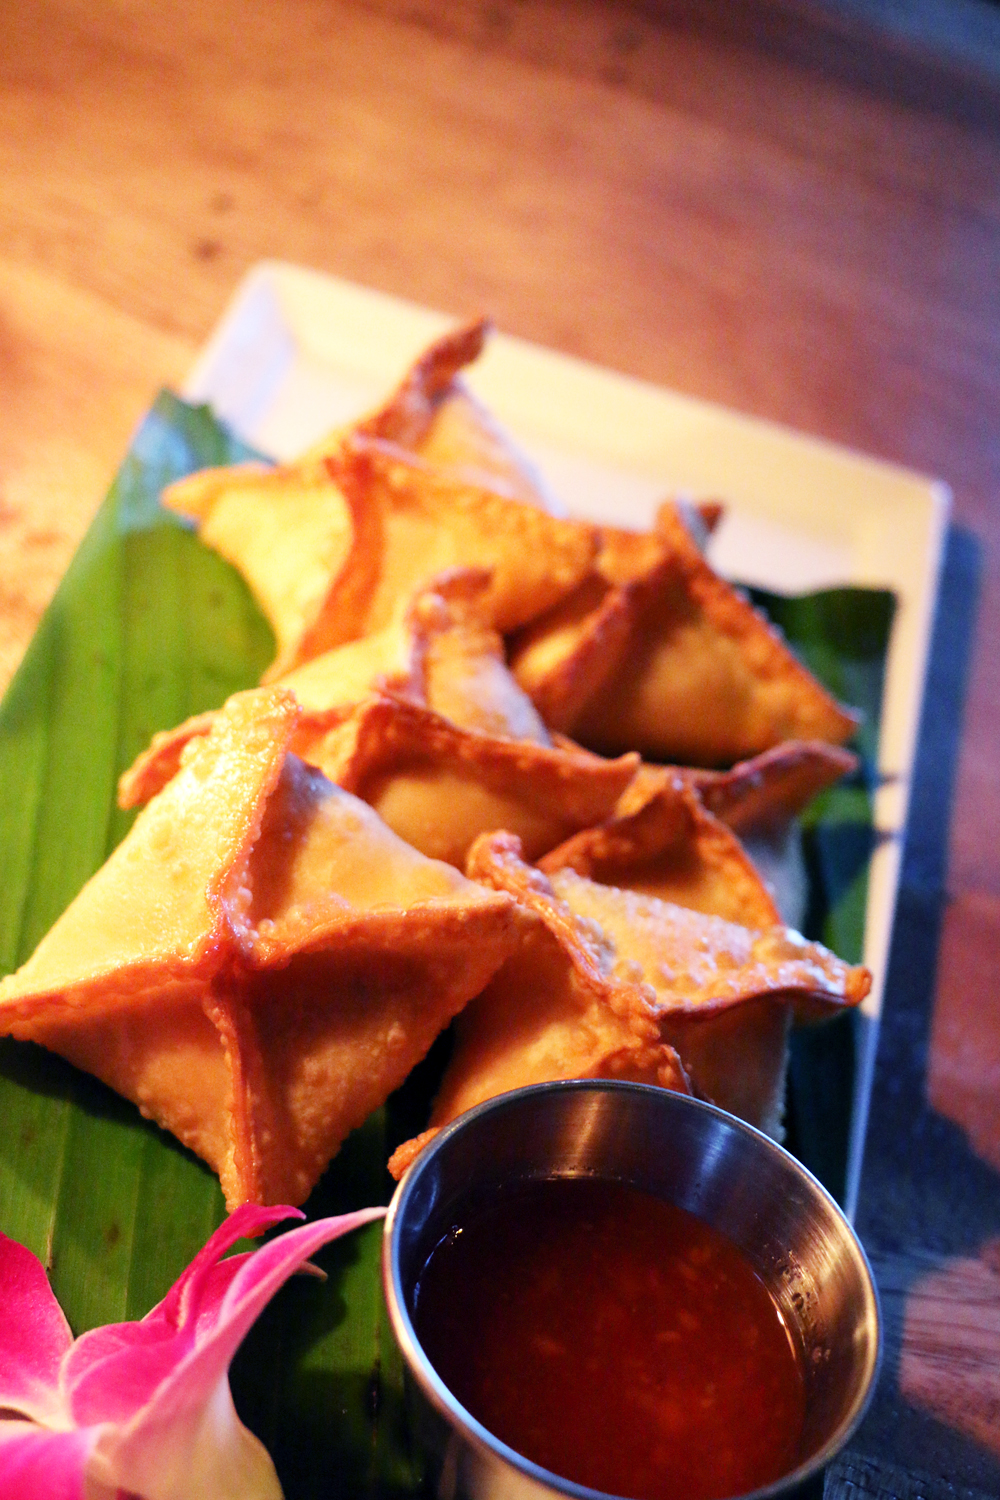 Crab rangoons with sweet chilli dipping sauce. Photo: Kim Westerman